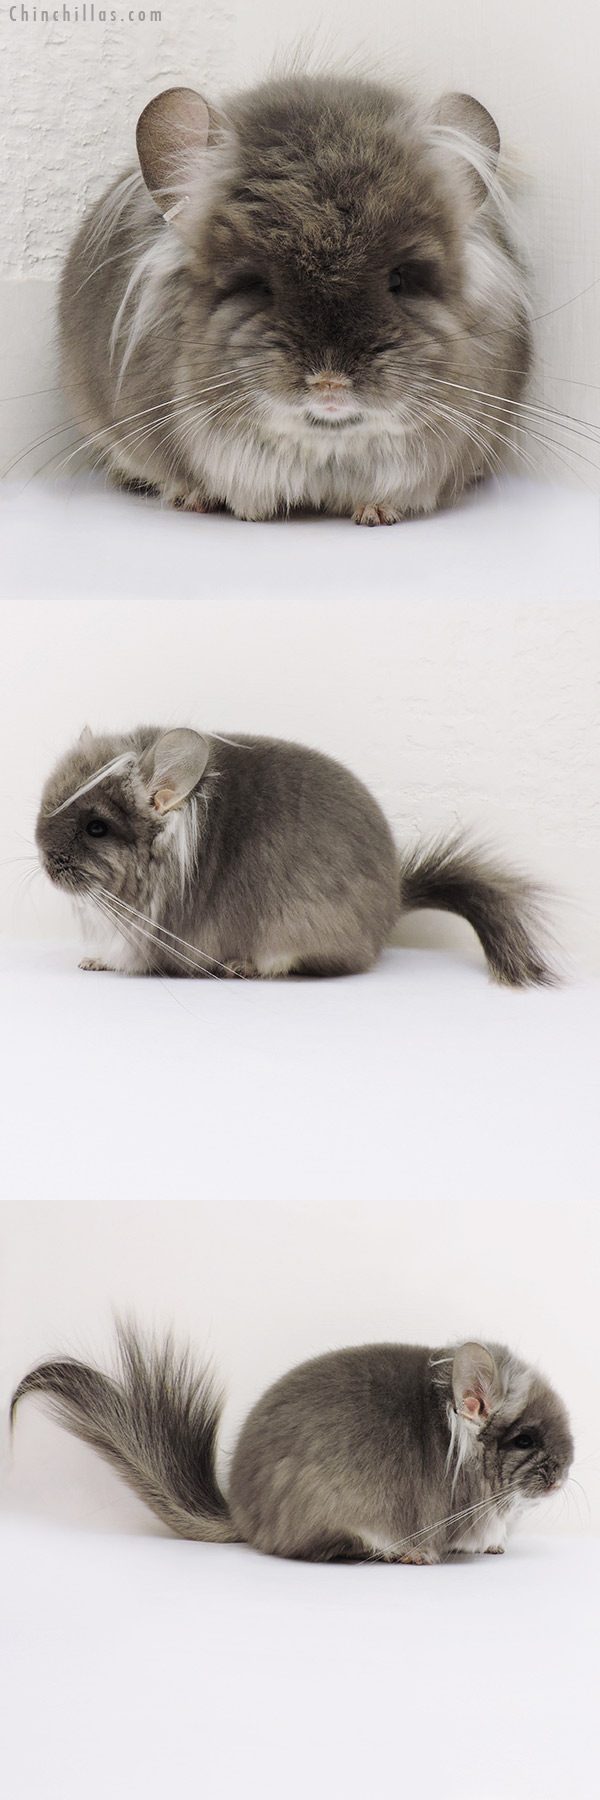 16197 Exceptional Brevi Type TOV Violet G2 CCCU Royal Persian Angora Male with Long Ear Tendrils Chinchilla